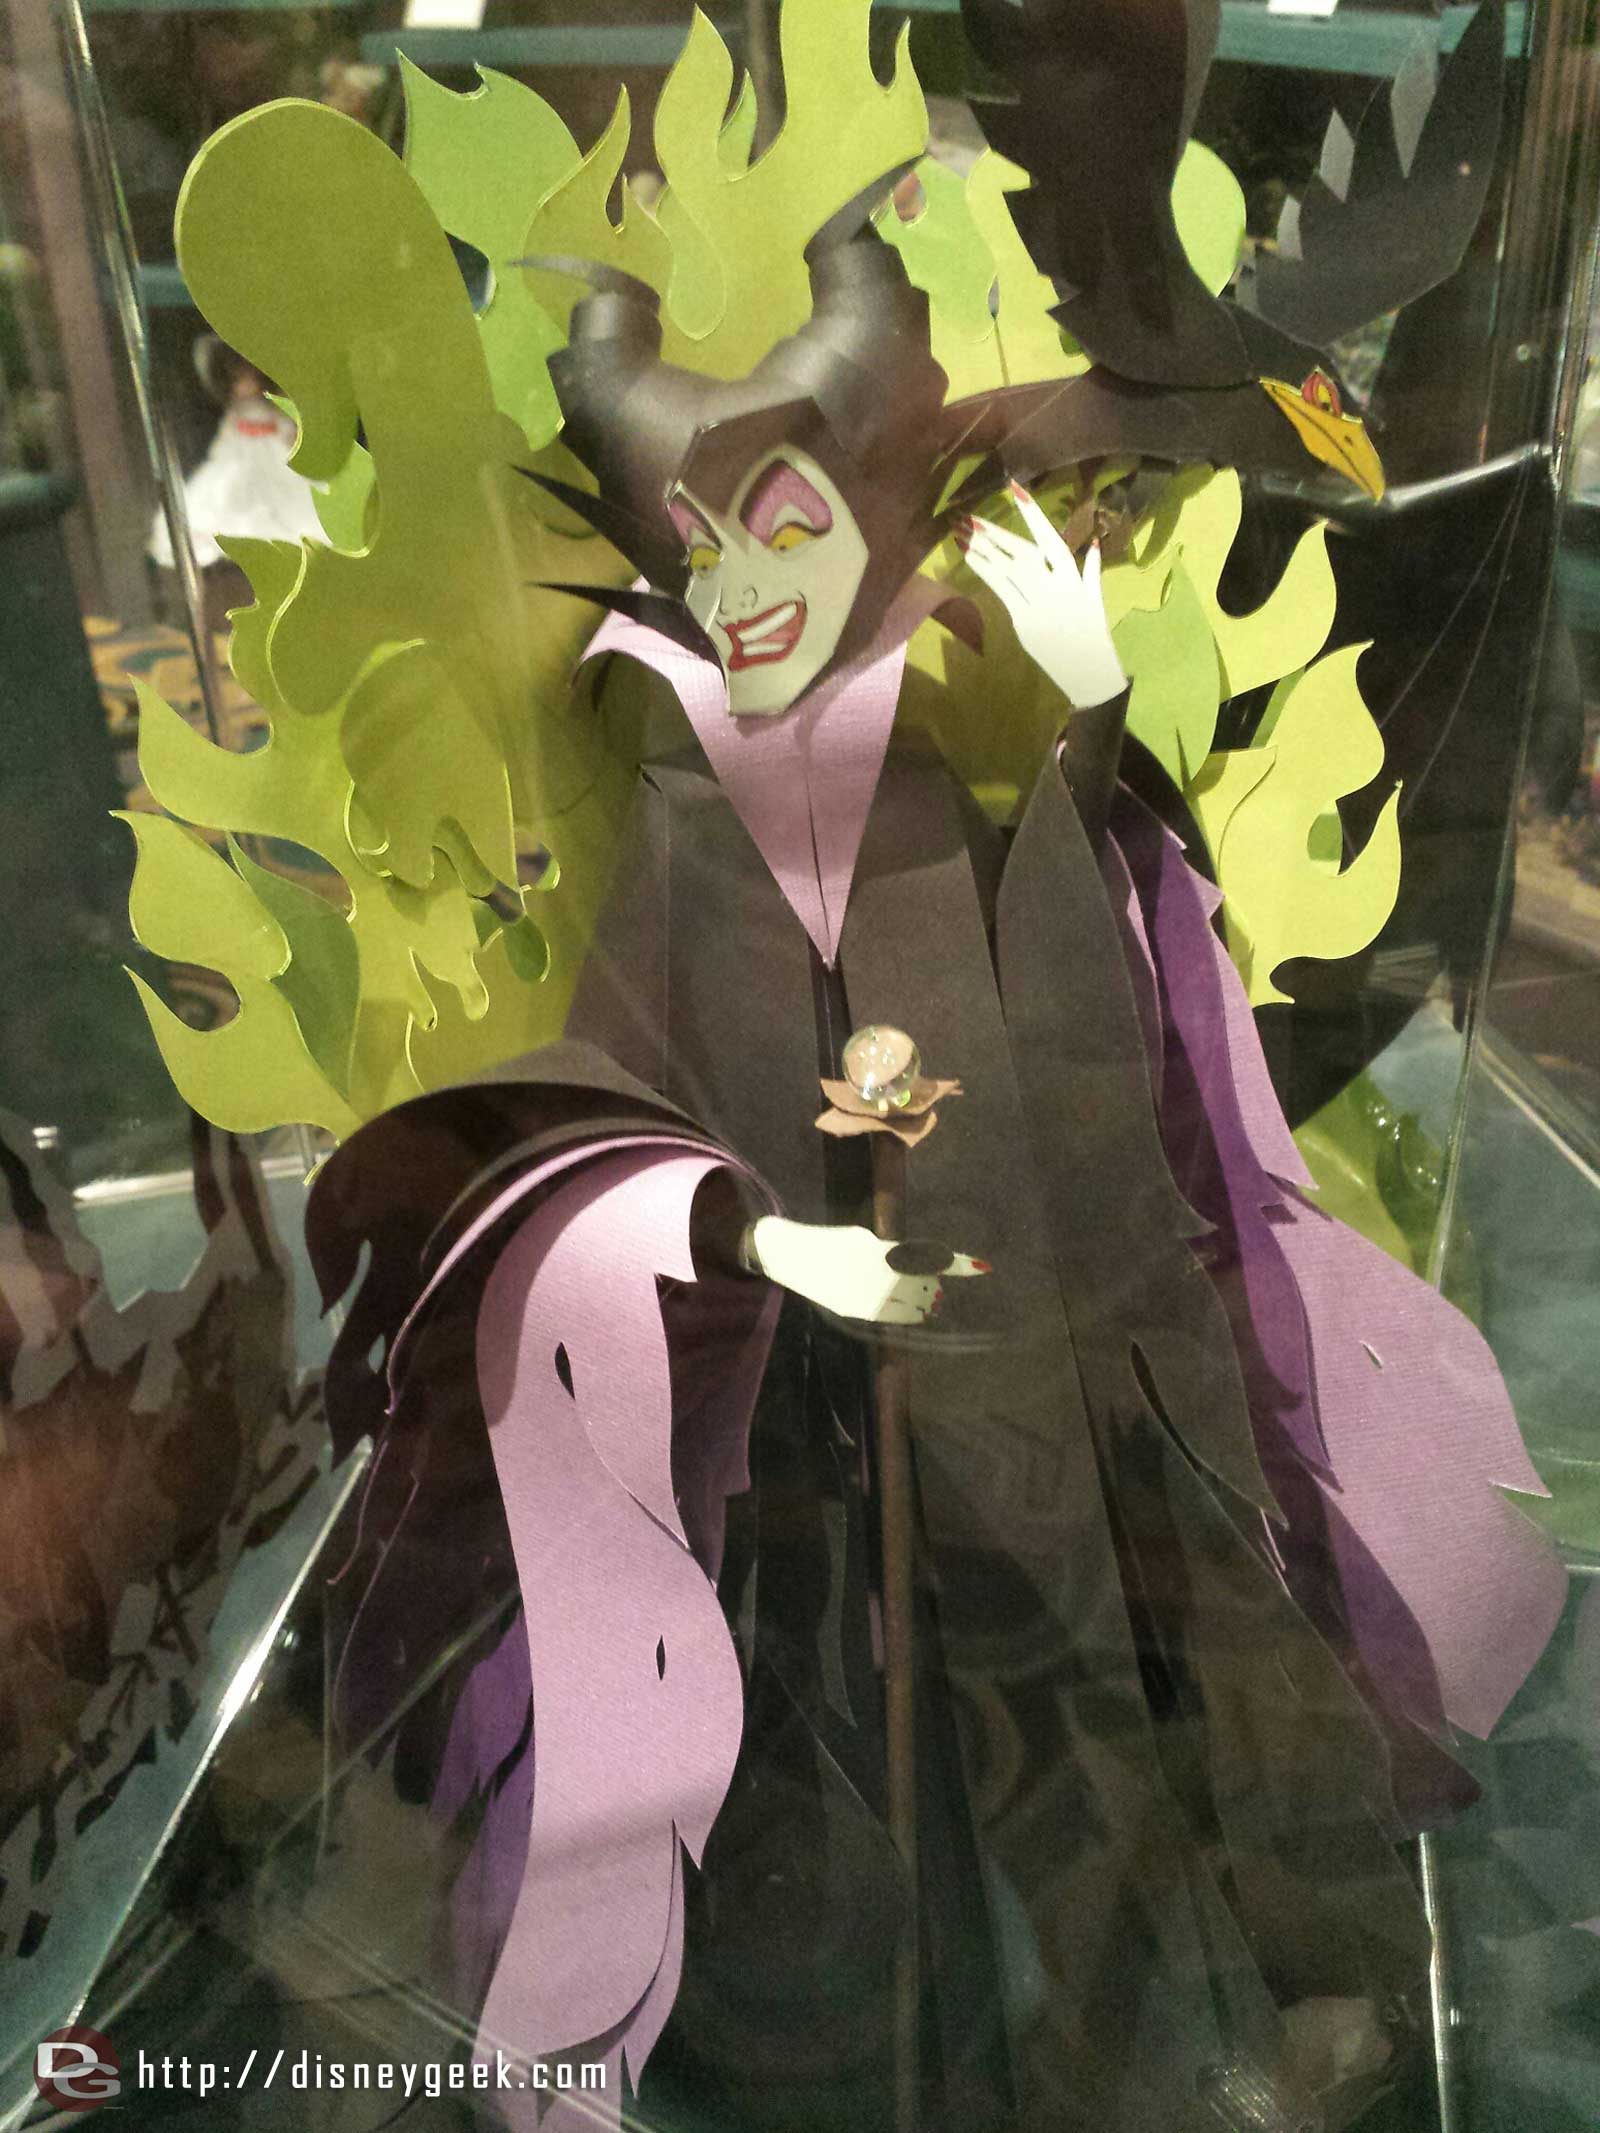 Off the Page has an original Maleficent sculpture by Britni Brault for $2,000